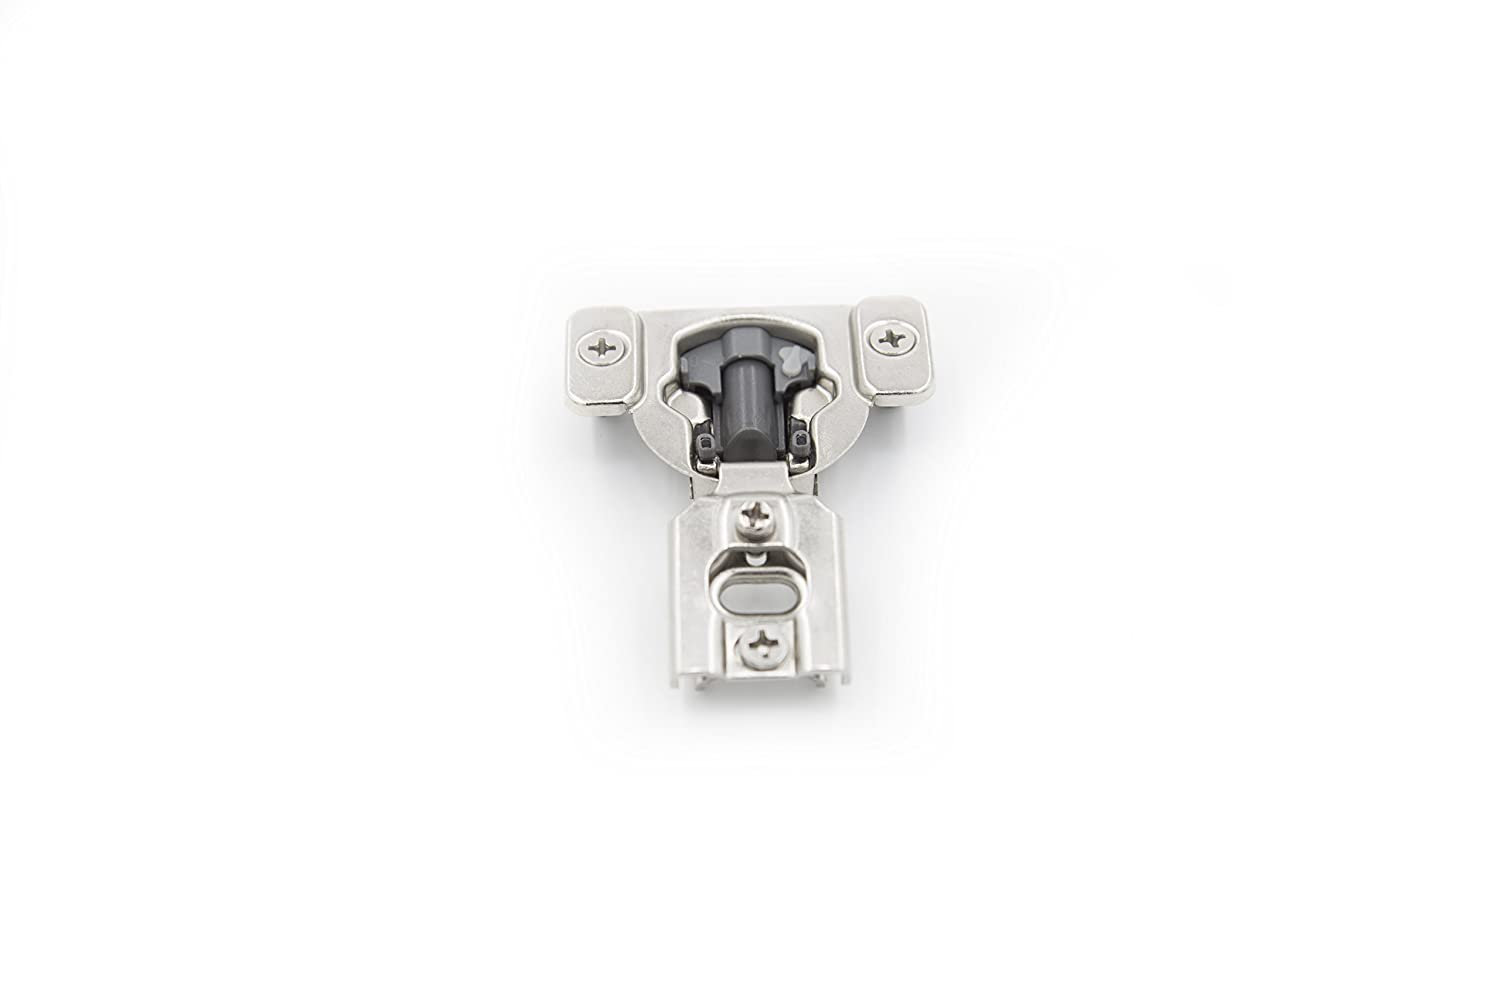 Screws Are Included Comet Pro Hardware H85 1//2 Cabinet Hinges Overlay Soft Close Nickel Plated Steel 40 Pack